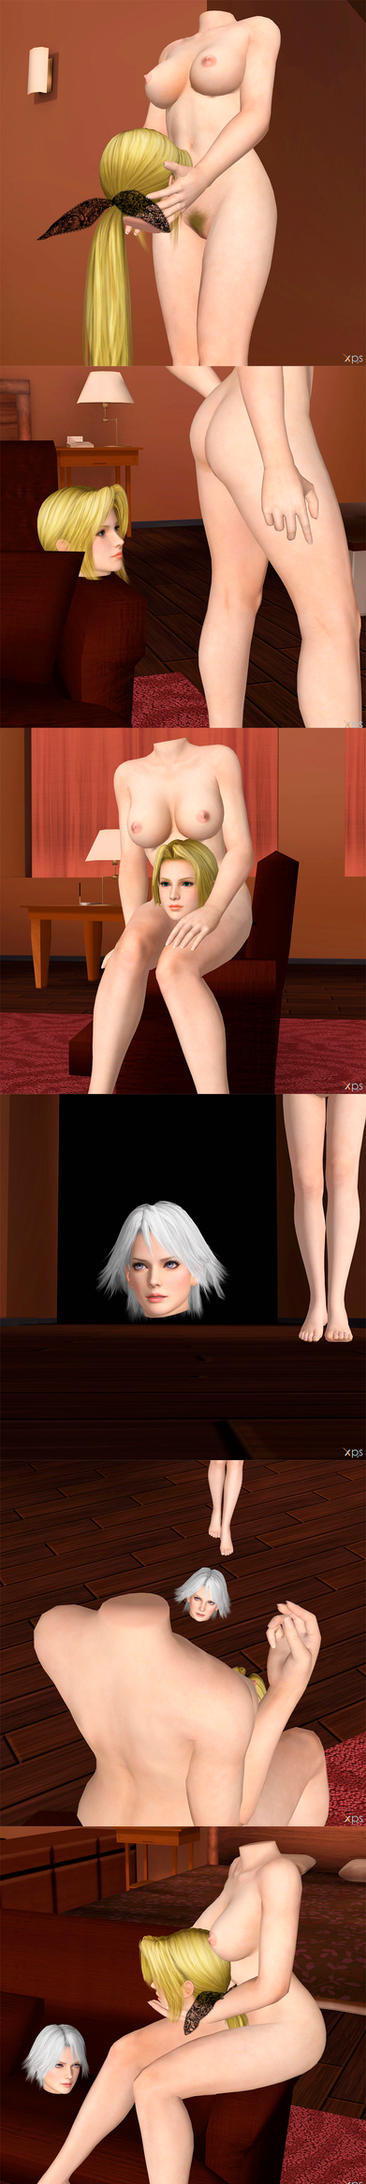 DoA Girls Naked NBM - Request (2) by Argeti